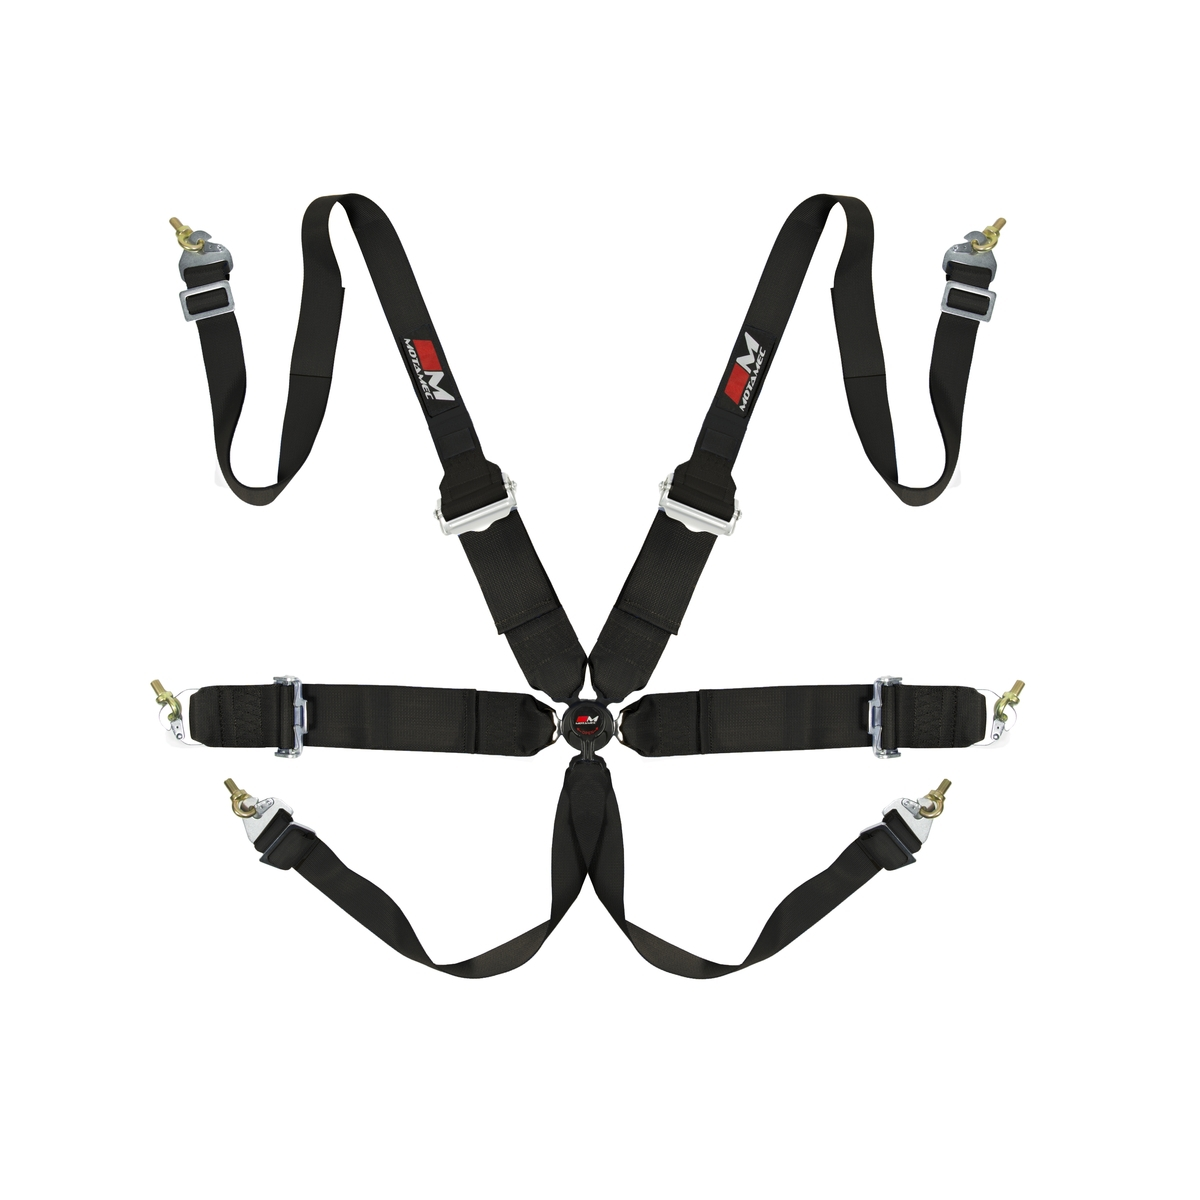 Motamec Racing 6 Point Hans Harness Fia Approved 3 Belt